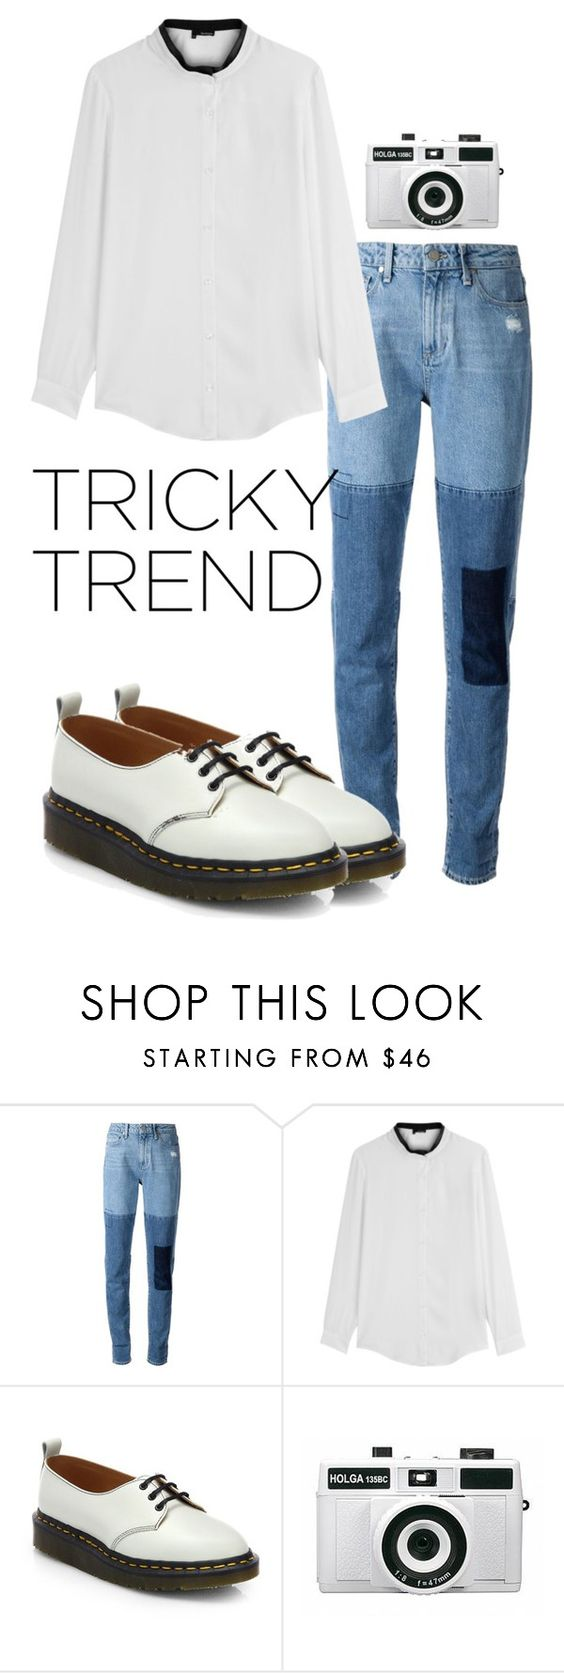 """""""Tricky Trend: Patchwork Denim"""" by ohlizzy ❤ liked on Polyvore featuring мода, Paige Denim, The Kooples, Comme des Garçons, Holga, TrickyTrend, contest, contestentry и patchworkdenim"""